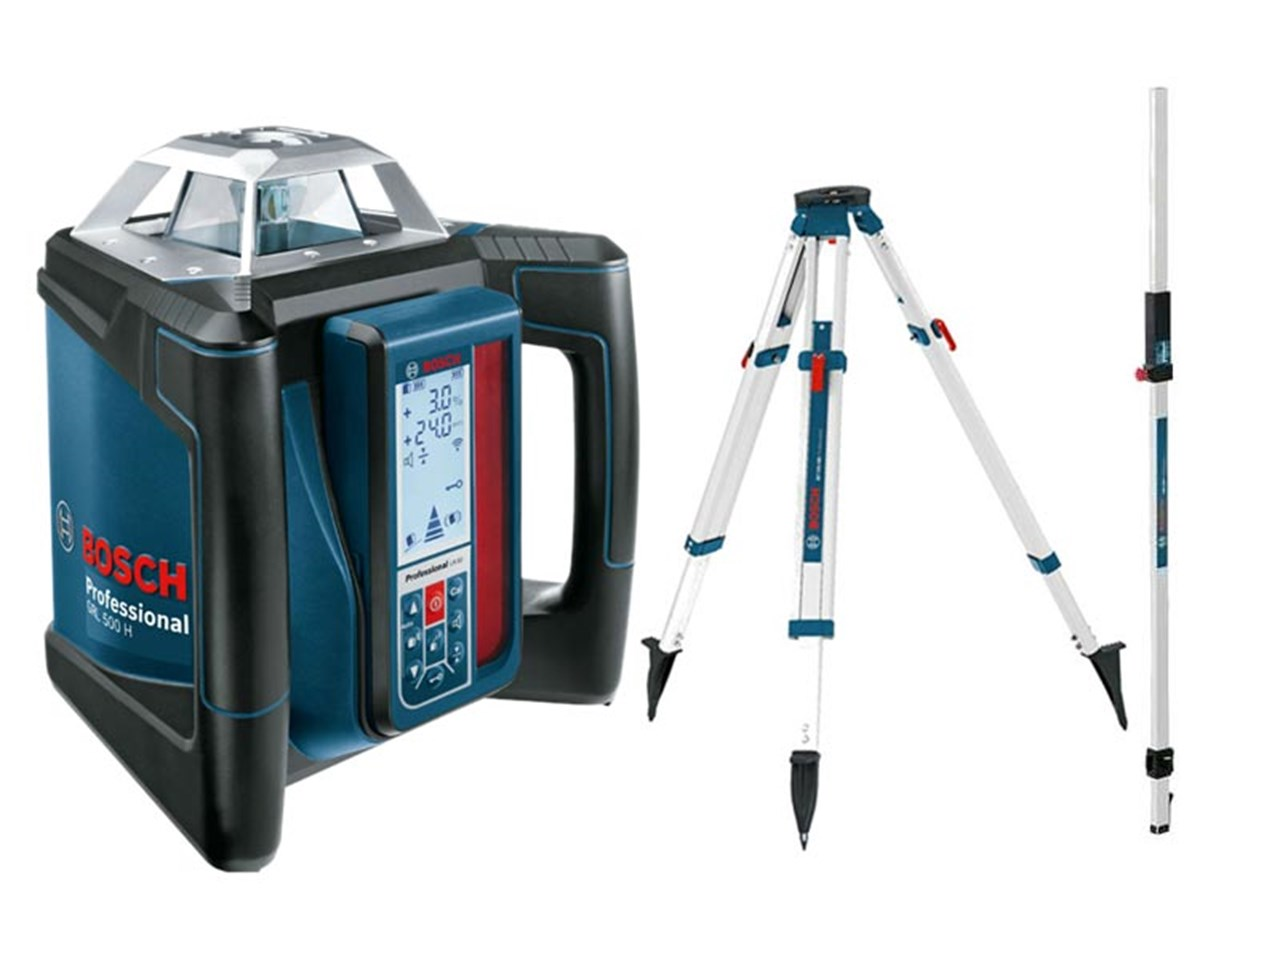 bosch 06159940ee rotary laser level with tripod and cut and fill rod. Black Bedroom Furniture Sets. Home Design Ideas